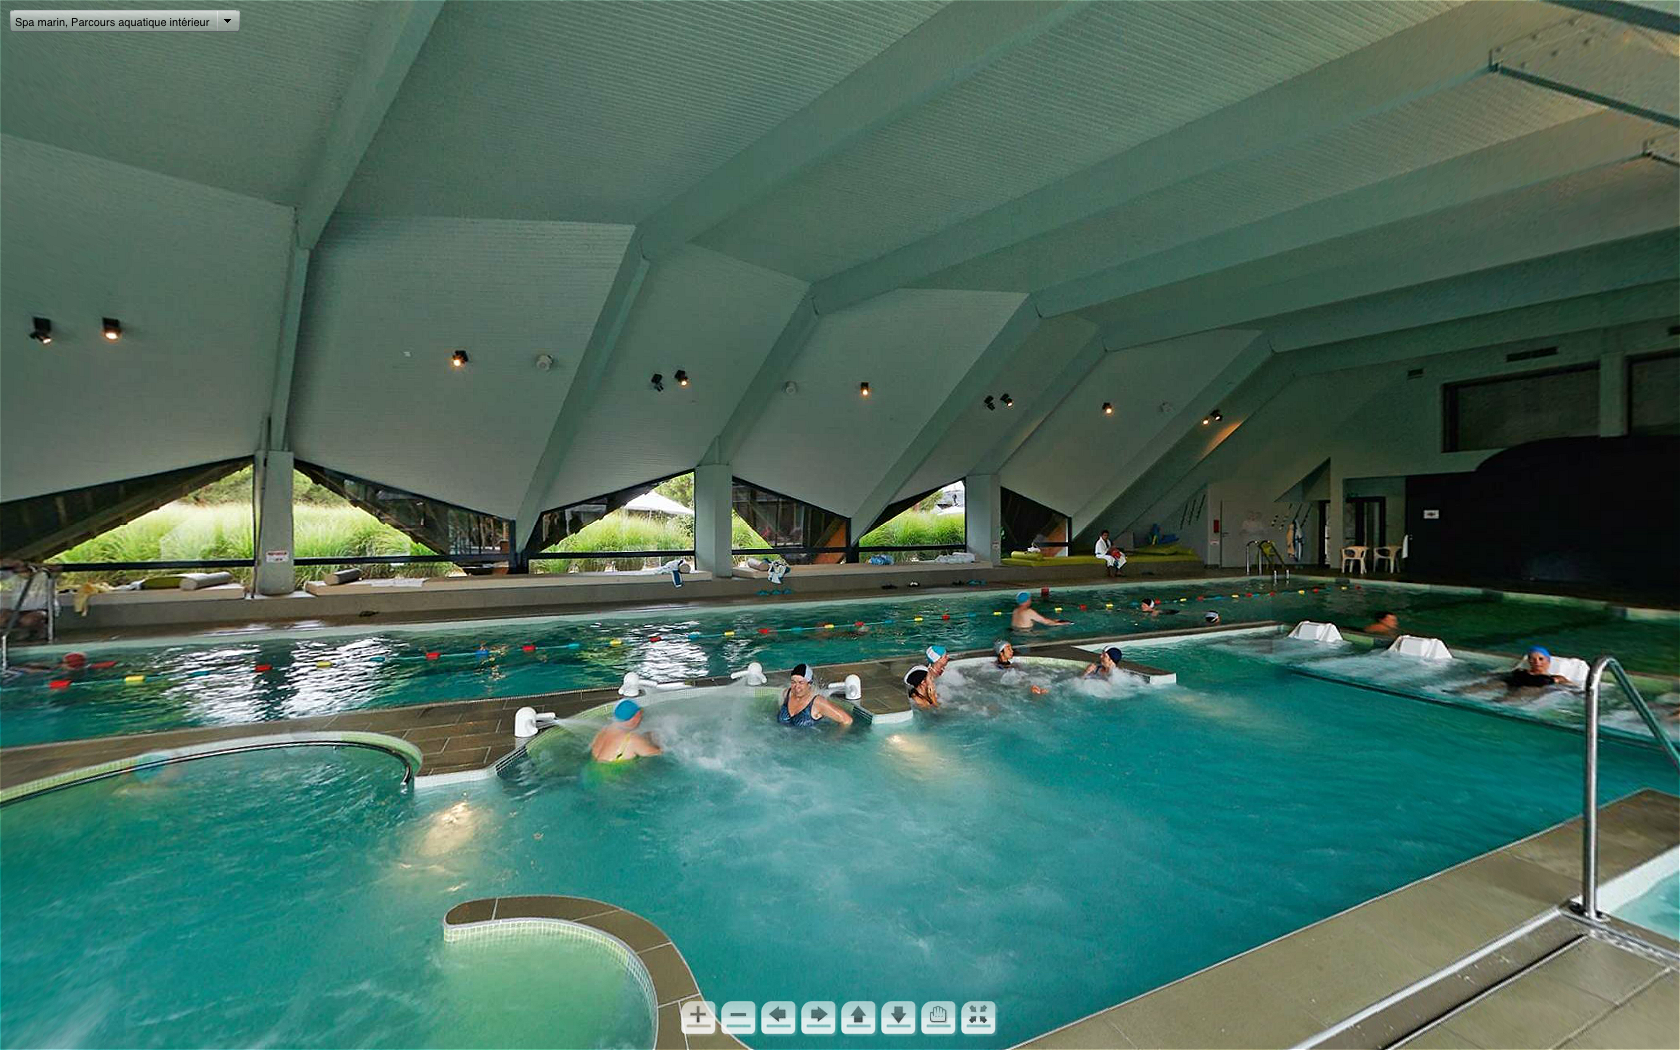 20 Wellness Retreats And Spas Where You Can Relax In 2014 Cnn Travel